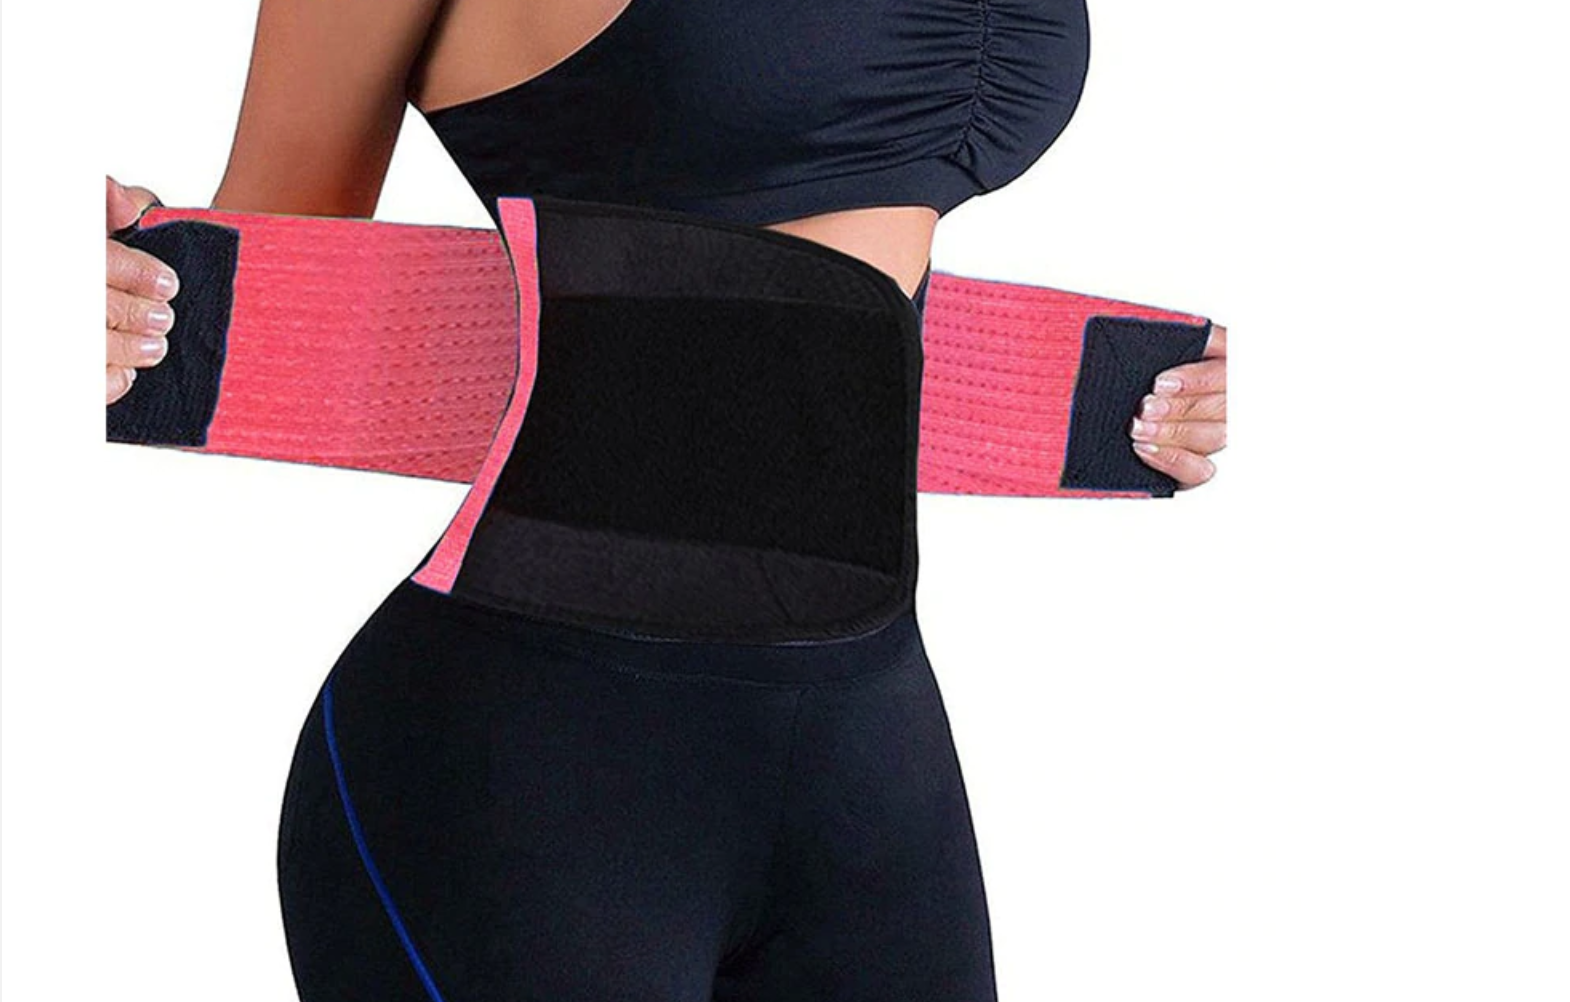 Ceinture de compression gainante sauna - S au 3XL